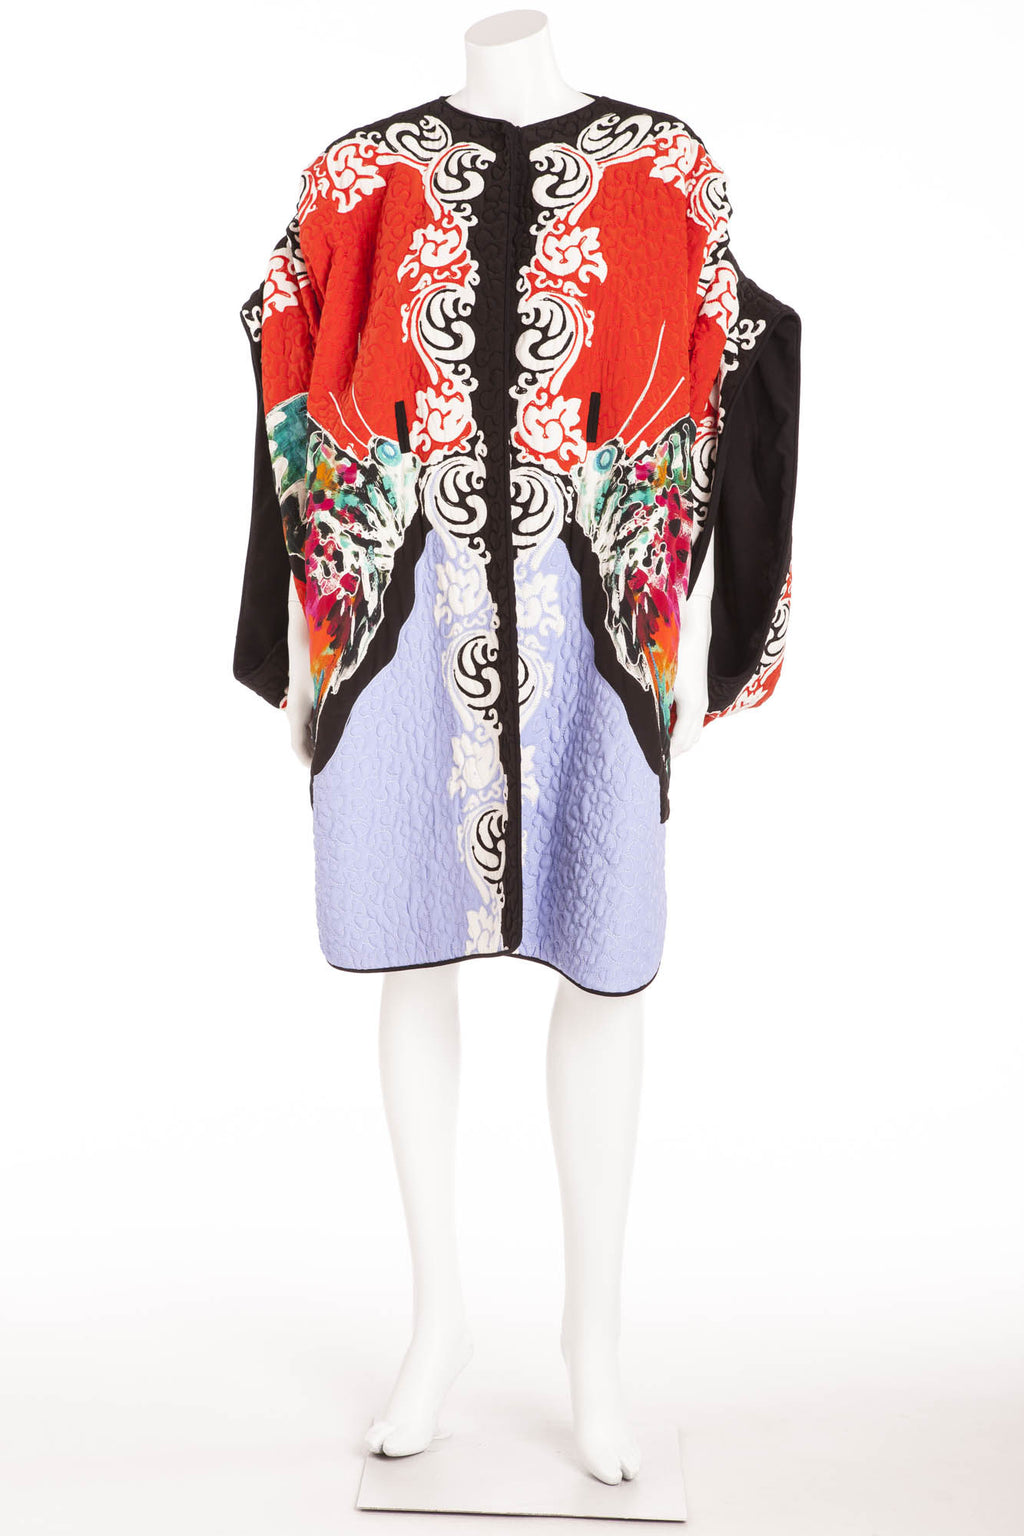 Etro  - Unique Multi Color Kimono Open Sleeve Coat New with Tags